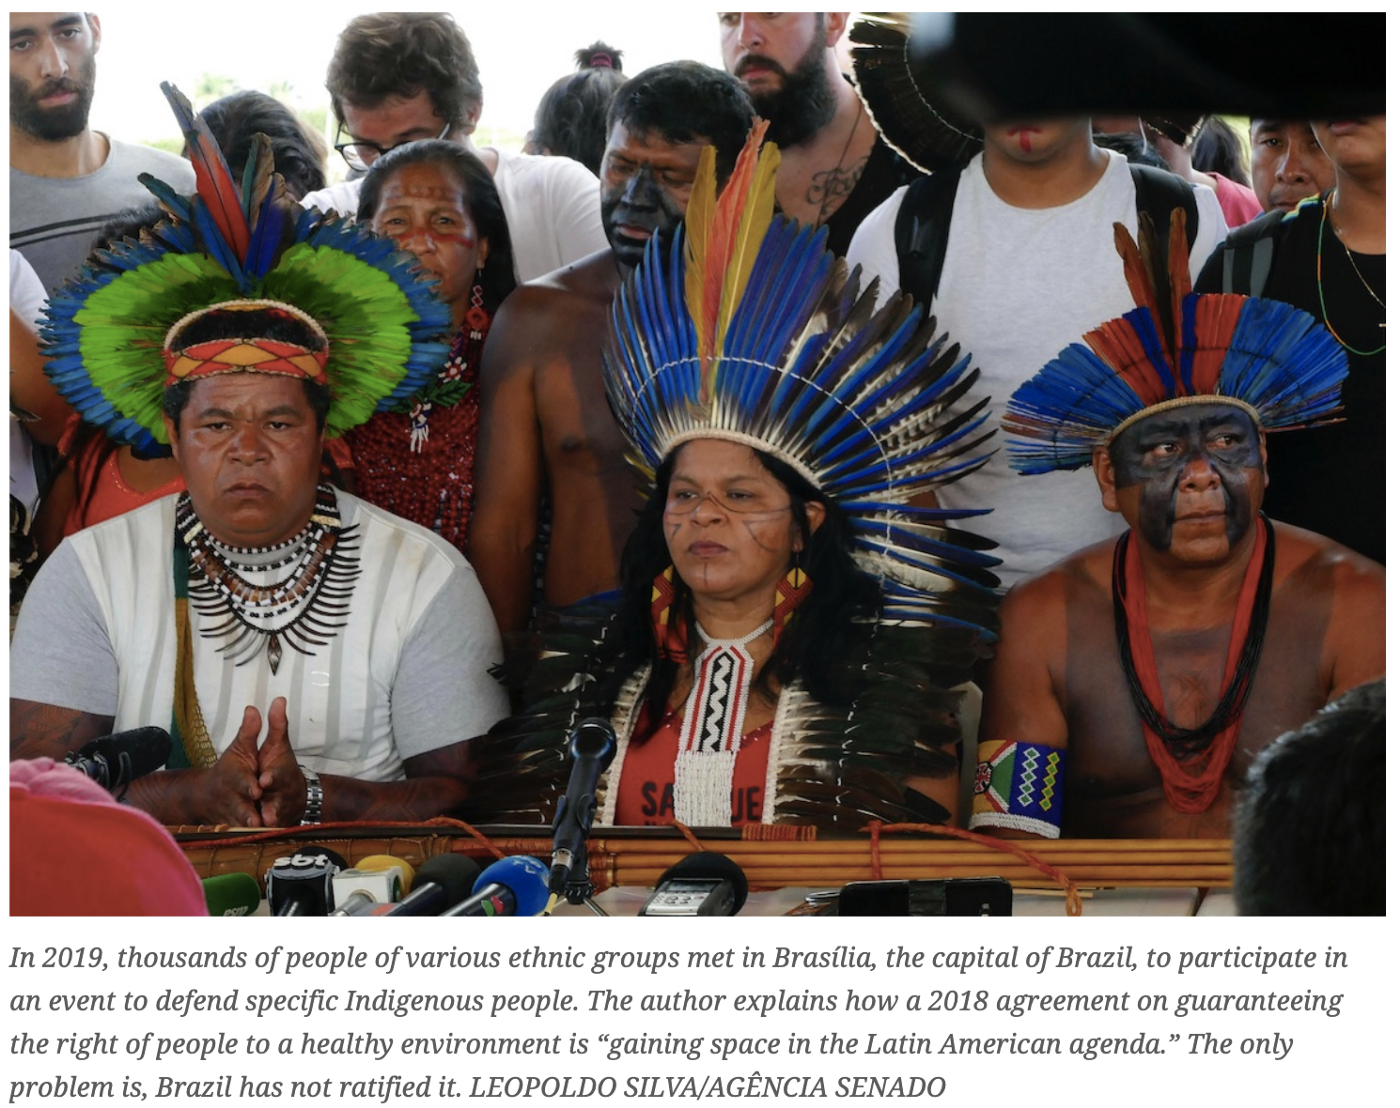 An image 3 people in traditional dress who took part in a 2019 meeting of indigenous people which drew thousands, in Brazil.